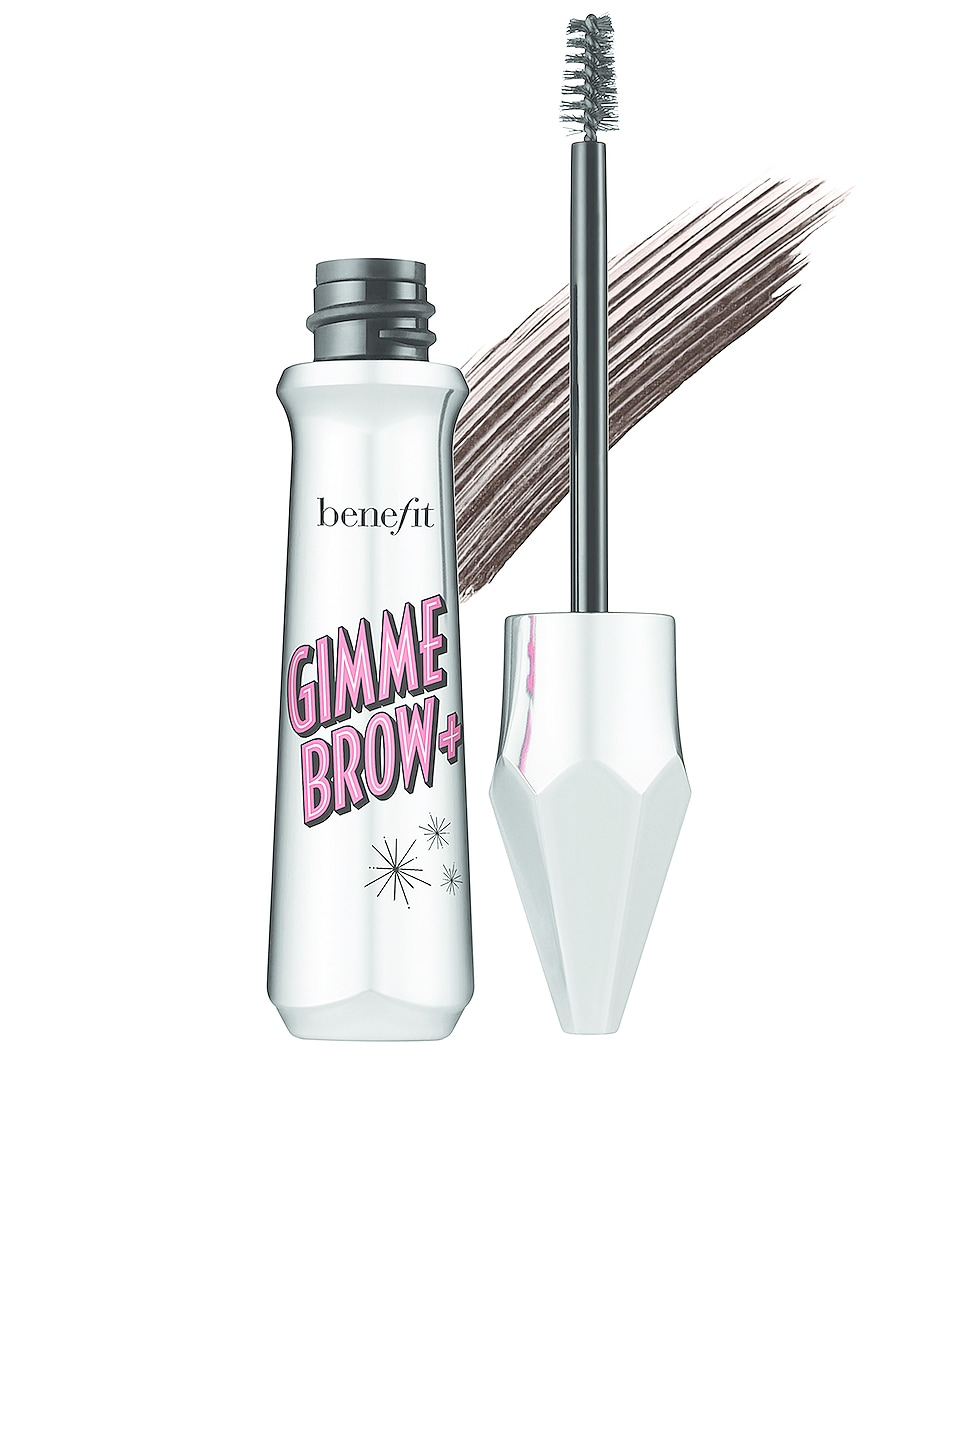 Benefit Cosmetics Gimme Brow+ Volumizing Eyebrow Gel in 06 Cool Soft Black